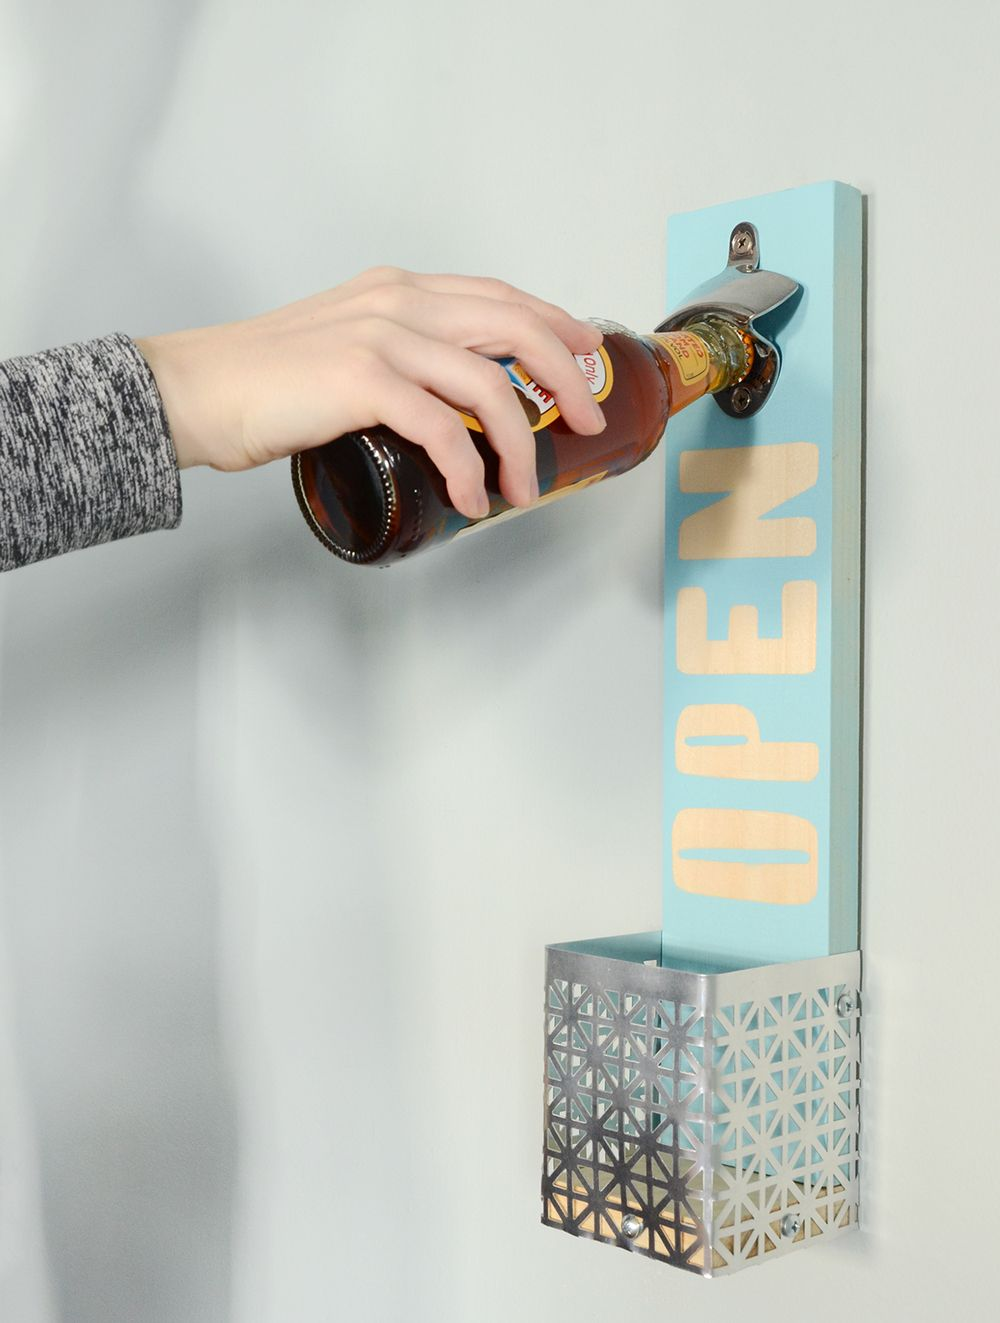 How to easy wall mounted bottle opener easy wall wall mount how to easy wall mounted bottle opener amipublicfo Image collections